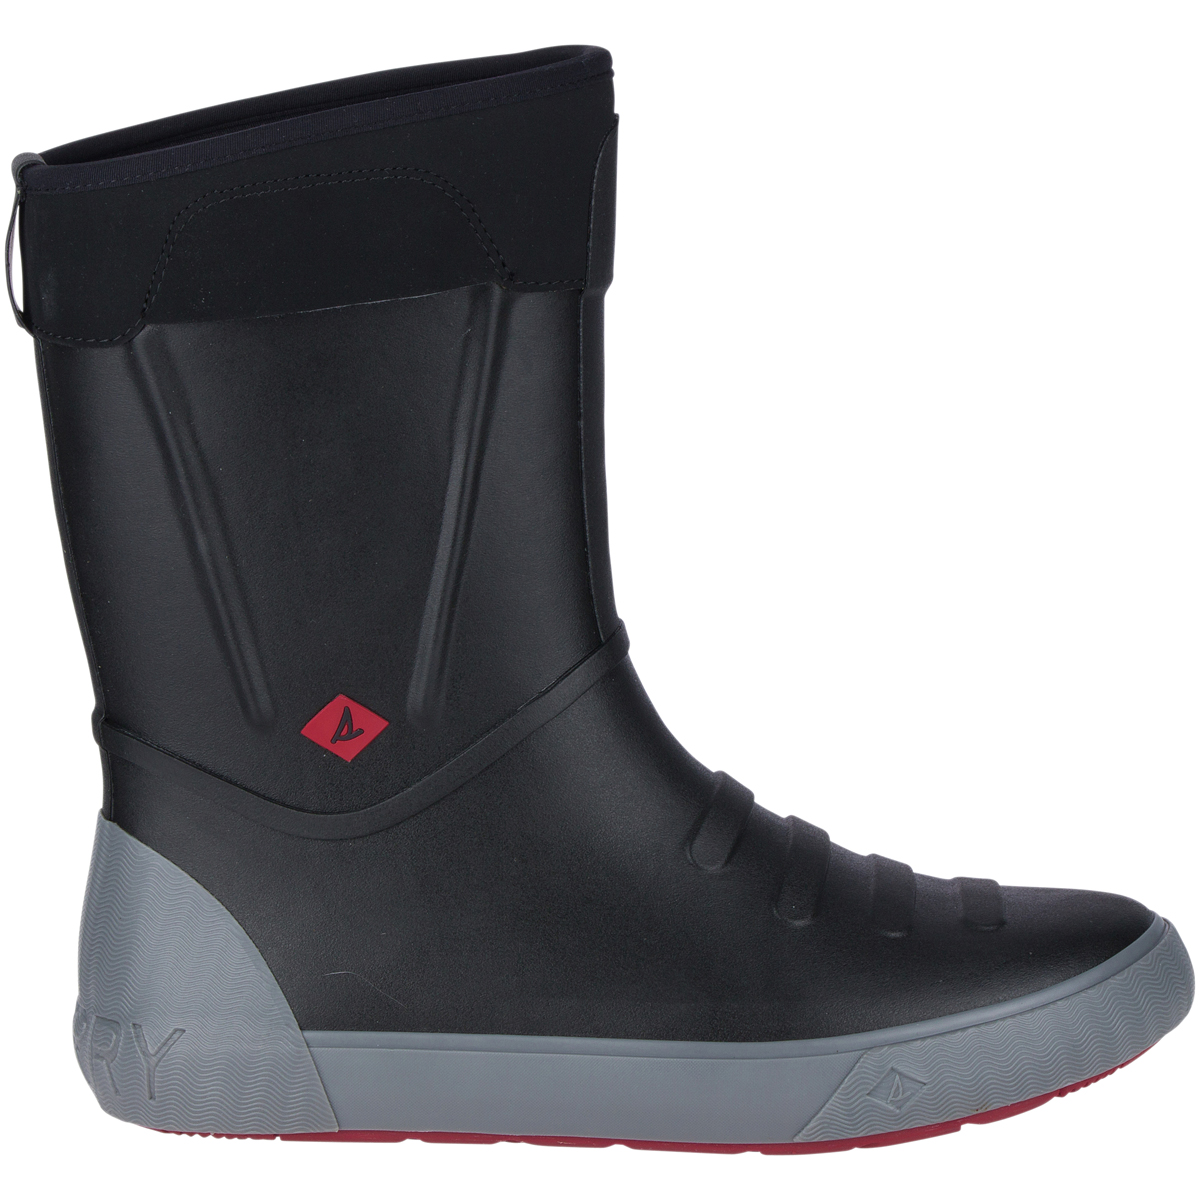 SPERRY H20 CUTWATER HEAVY WEATHER BOOT (STS18558)